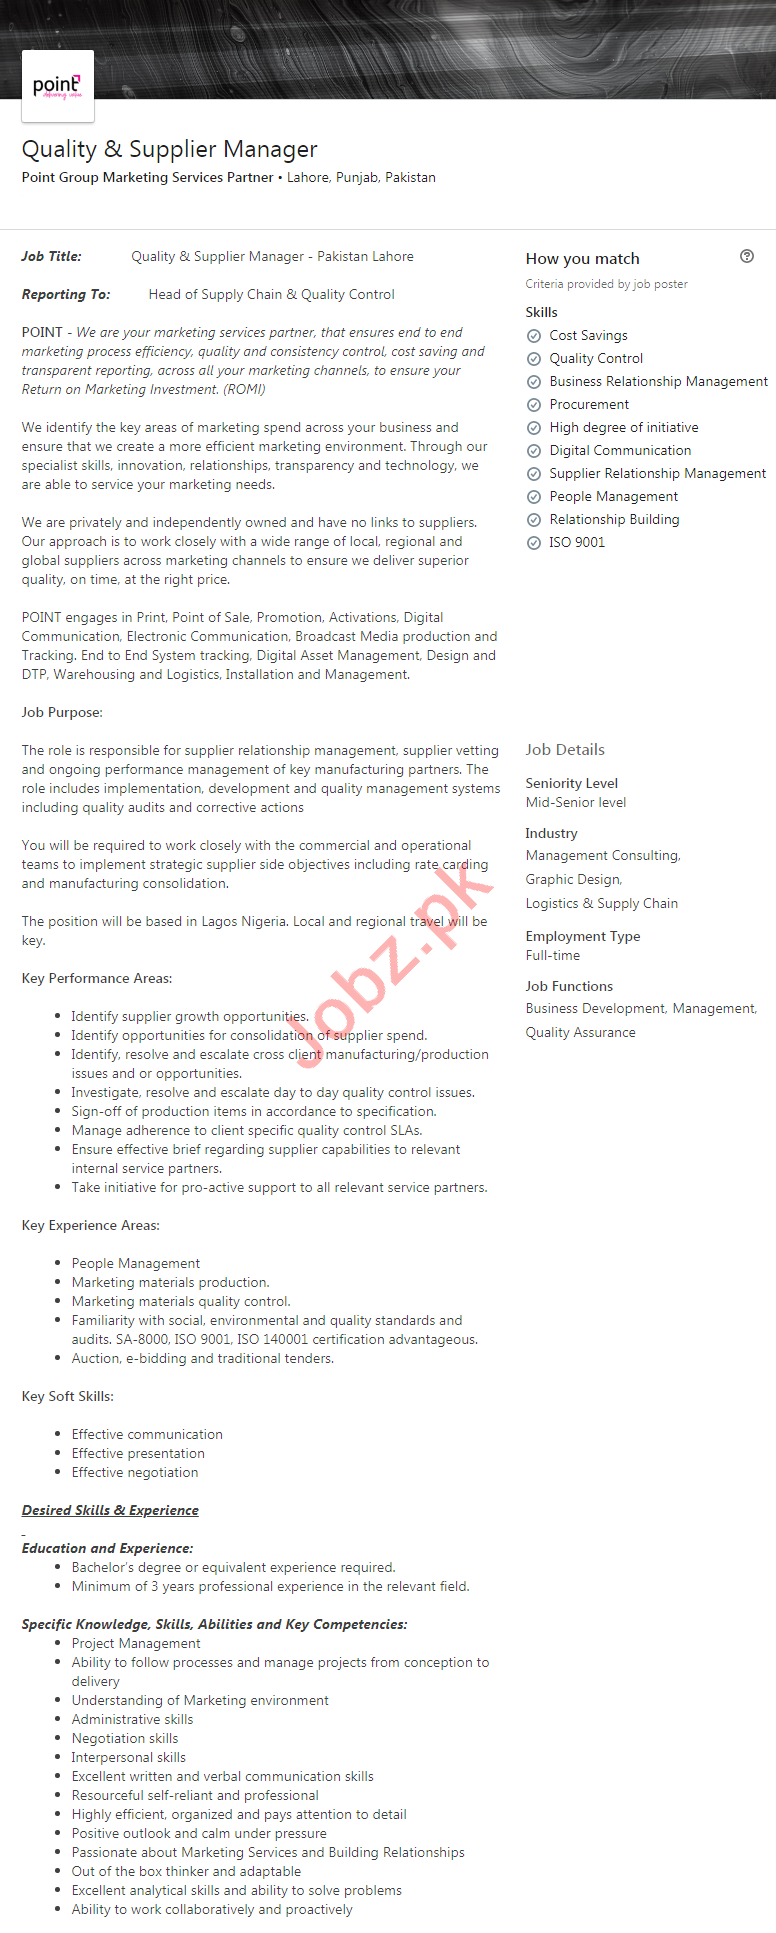 Point Group Marketing Services Lahore Jobs 2020